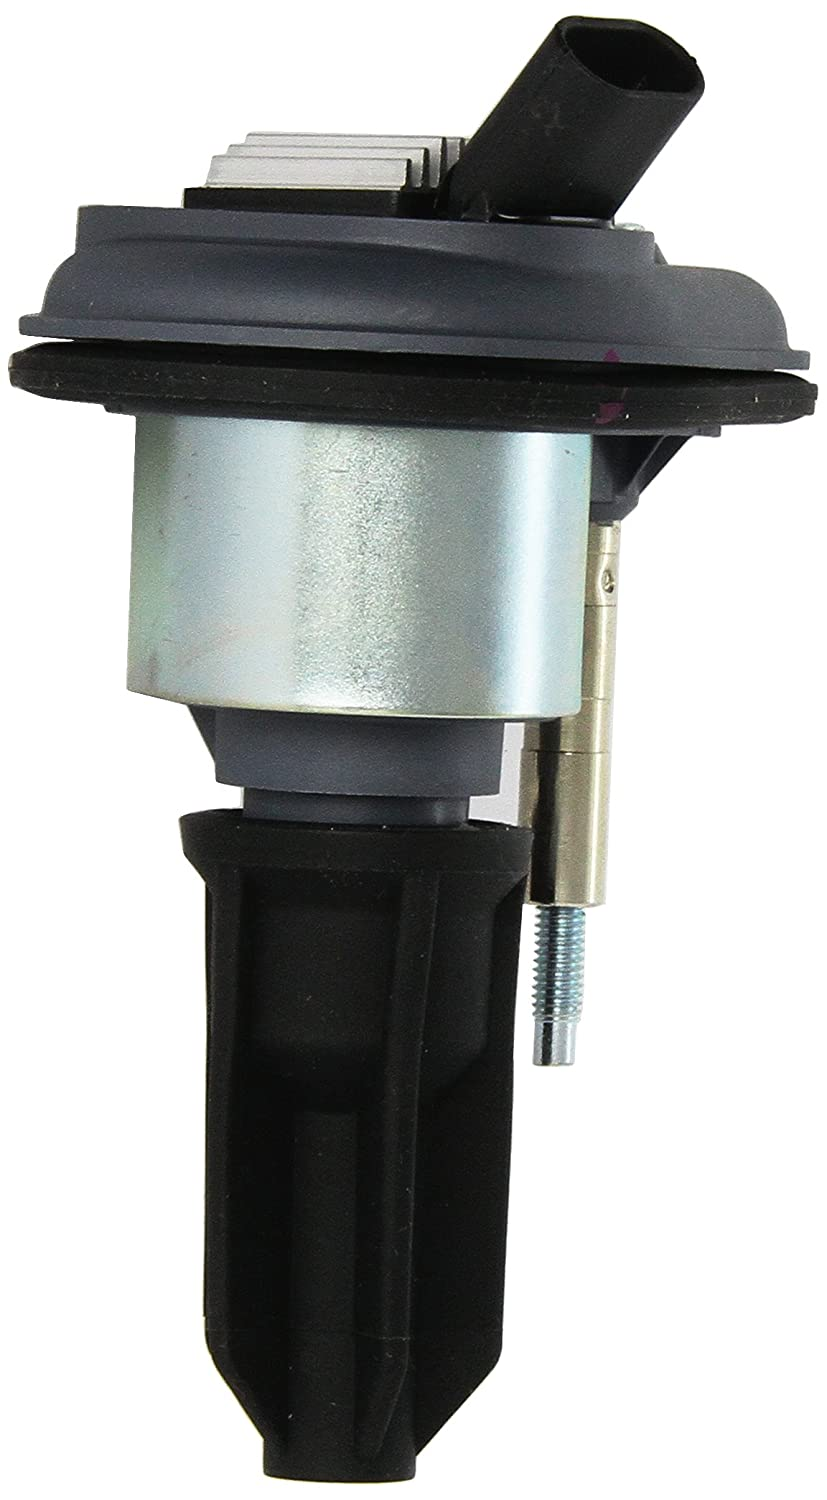 Standard Motor Products Uf 303t Ignition Coil Automotive Buzz Box